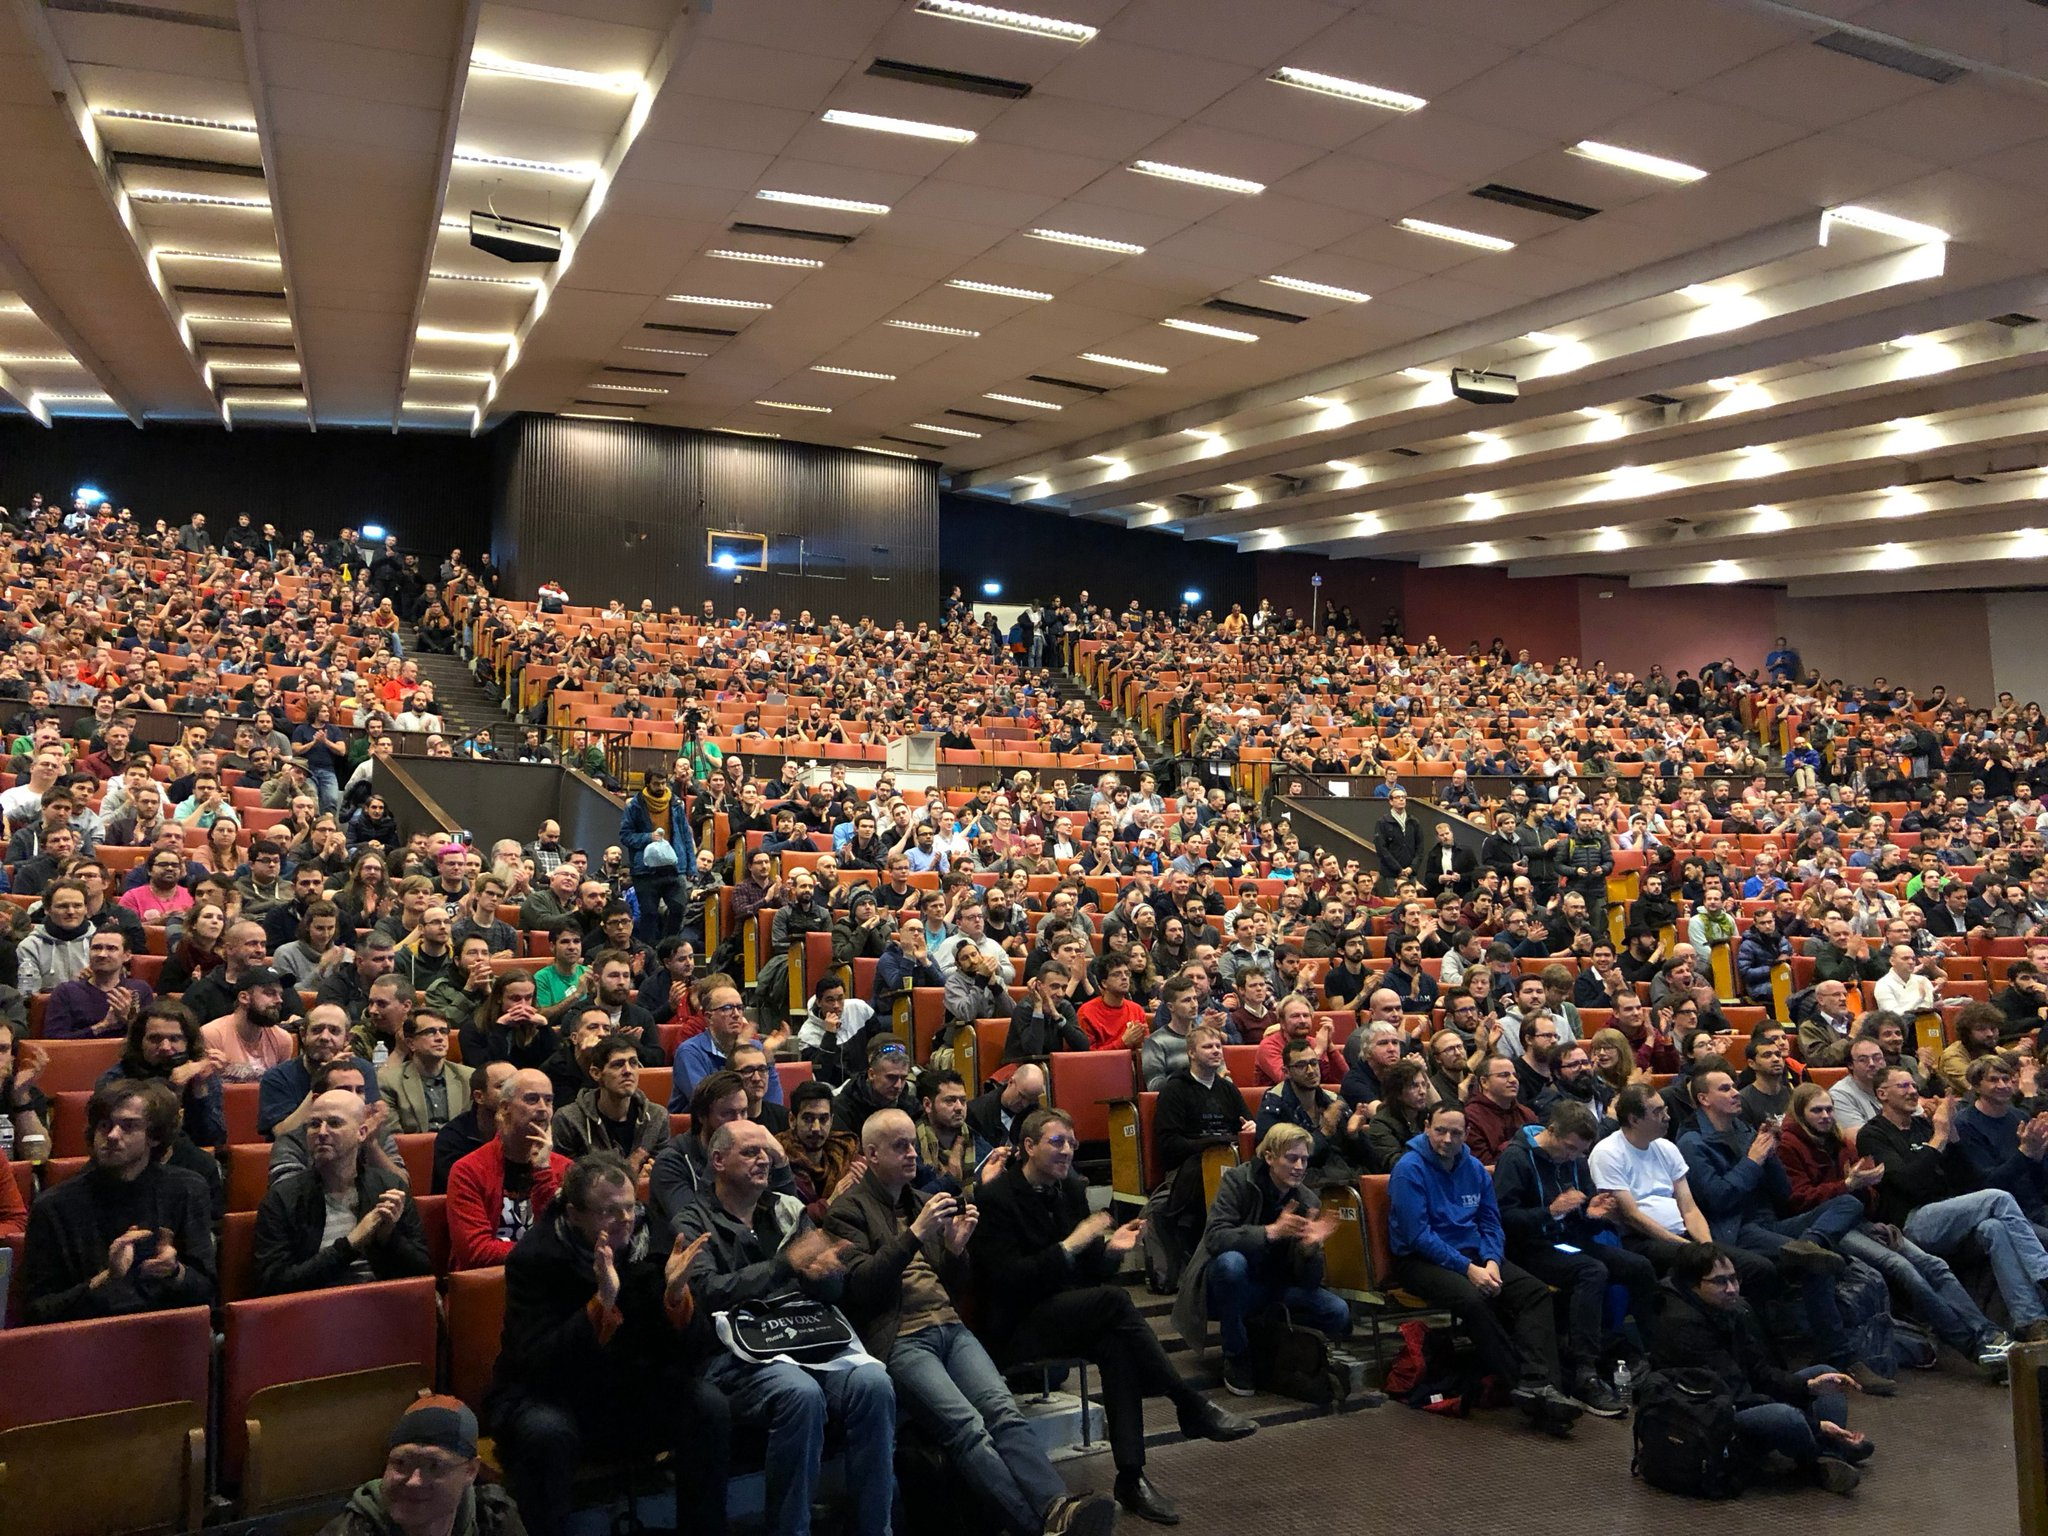 The closing talk at Fosdem in the main room